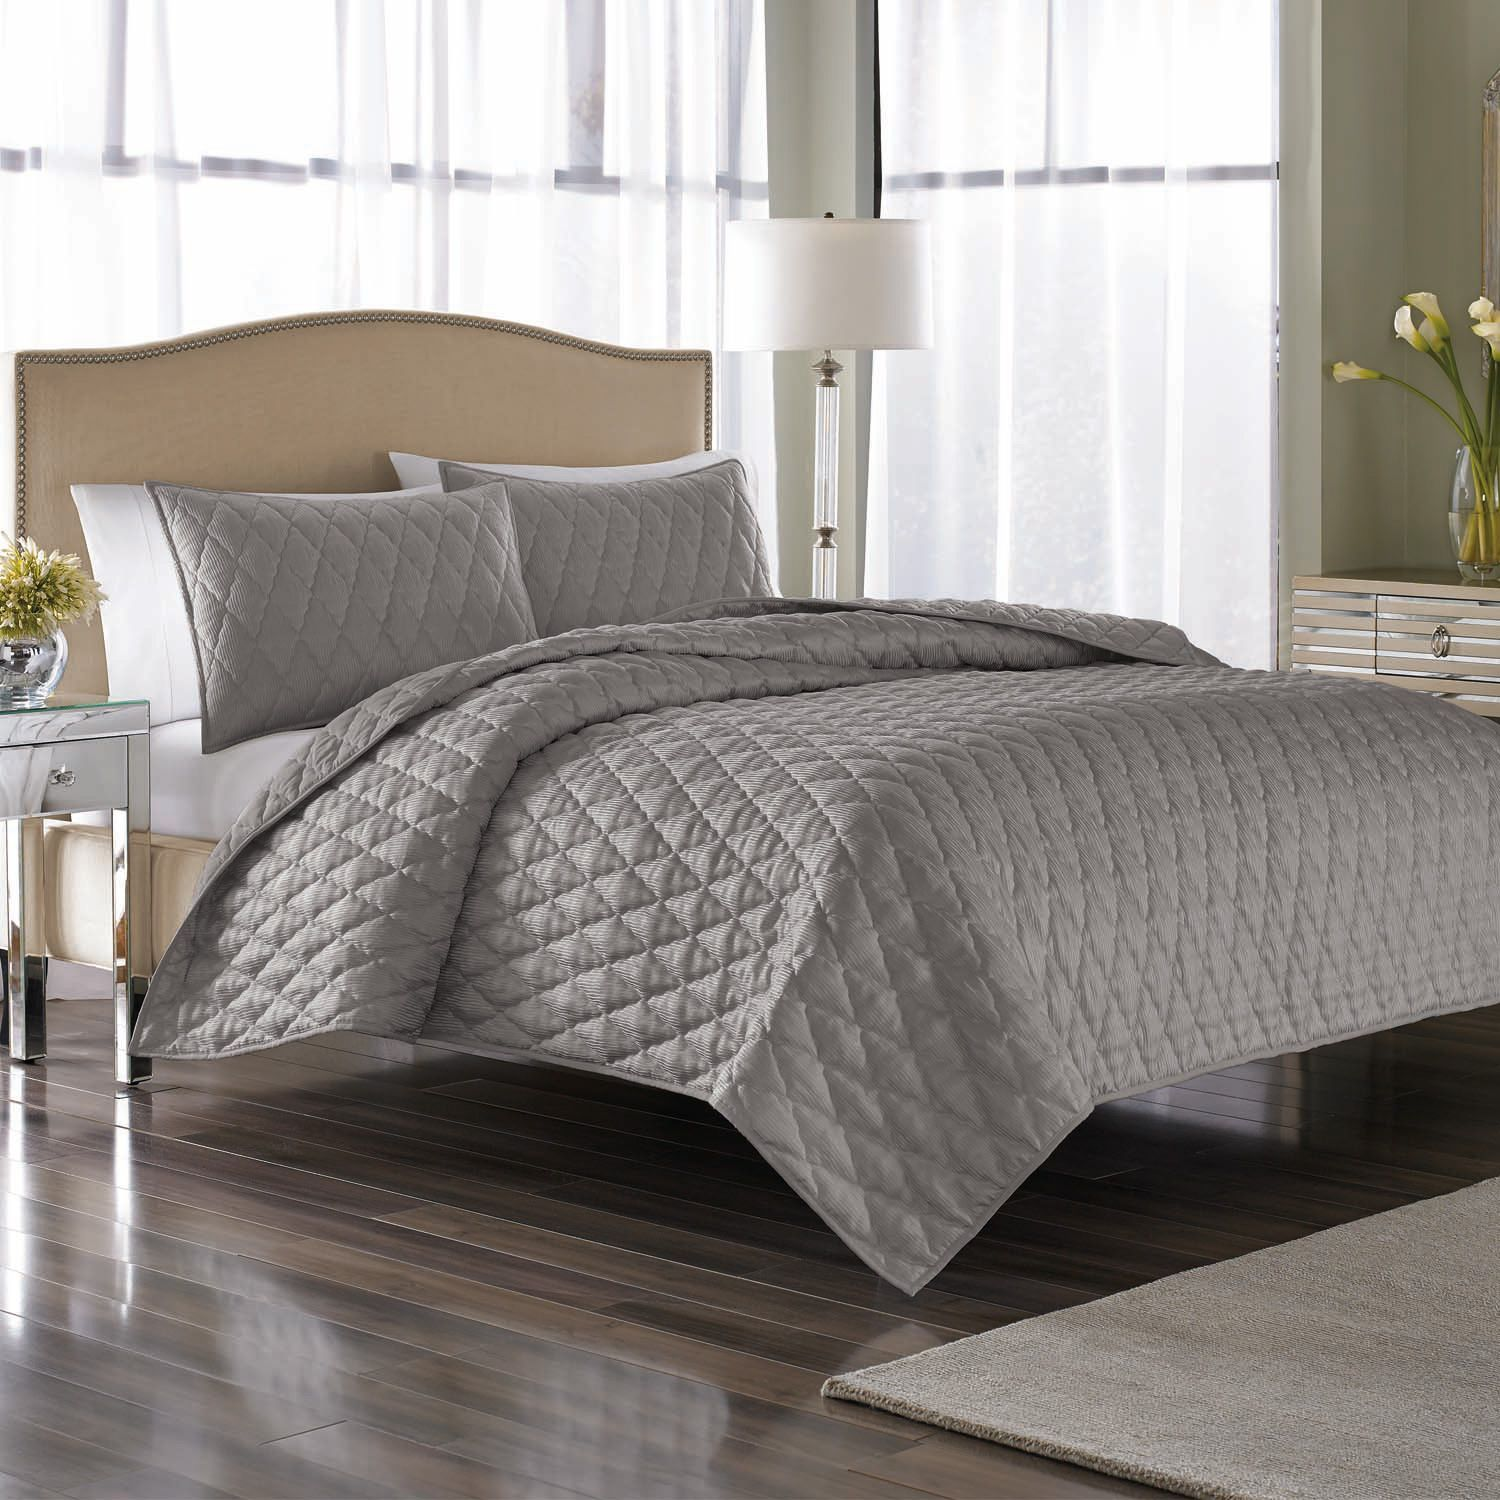 Nicole Miller Serenity Coverlet Set, King (3 pc. set) - Sam's Club